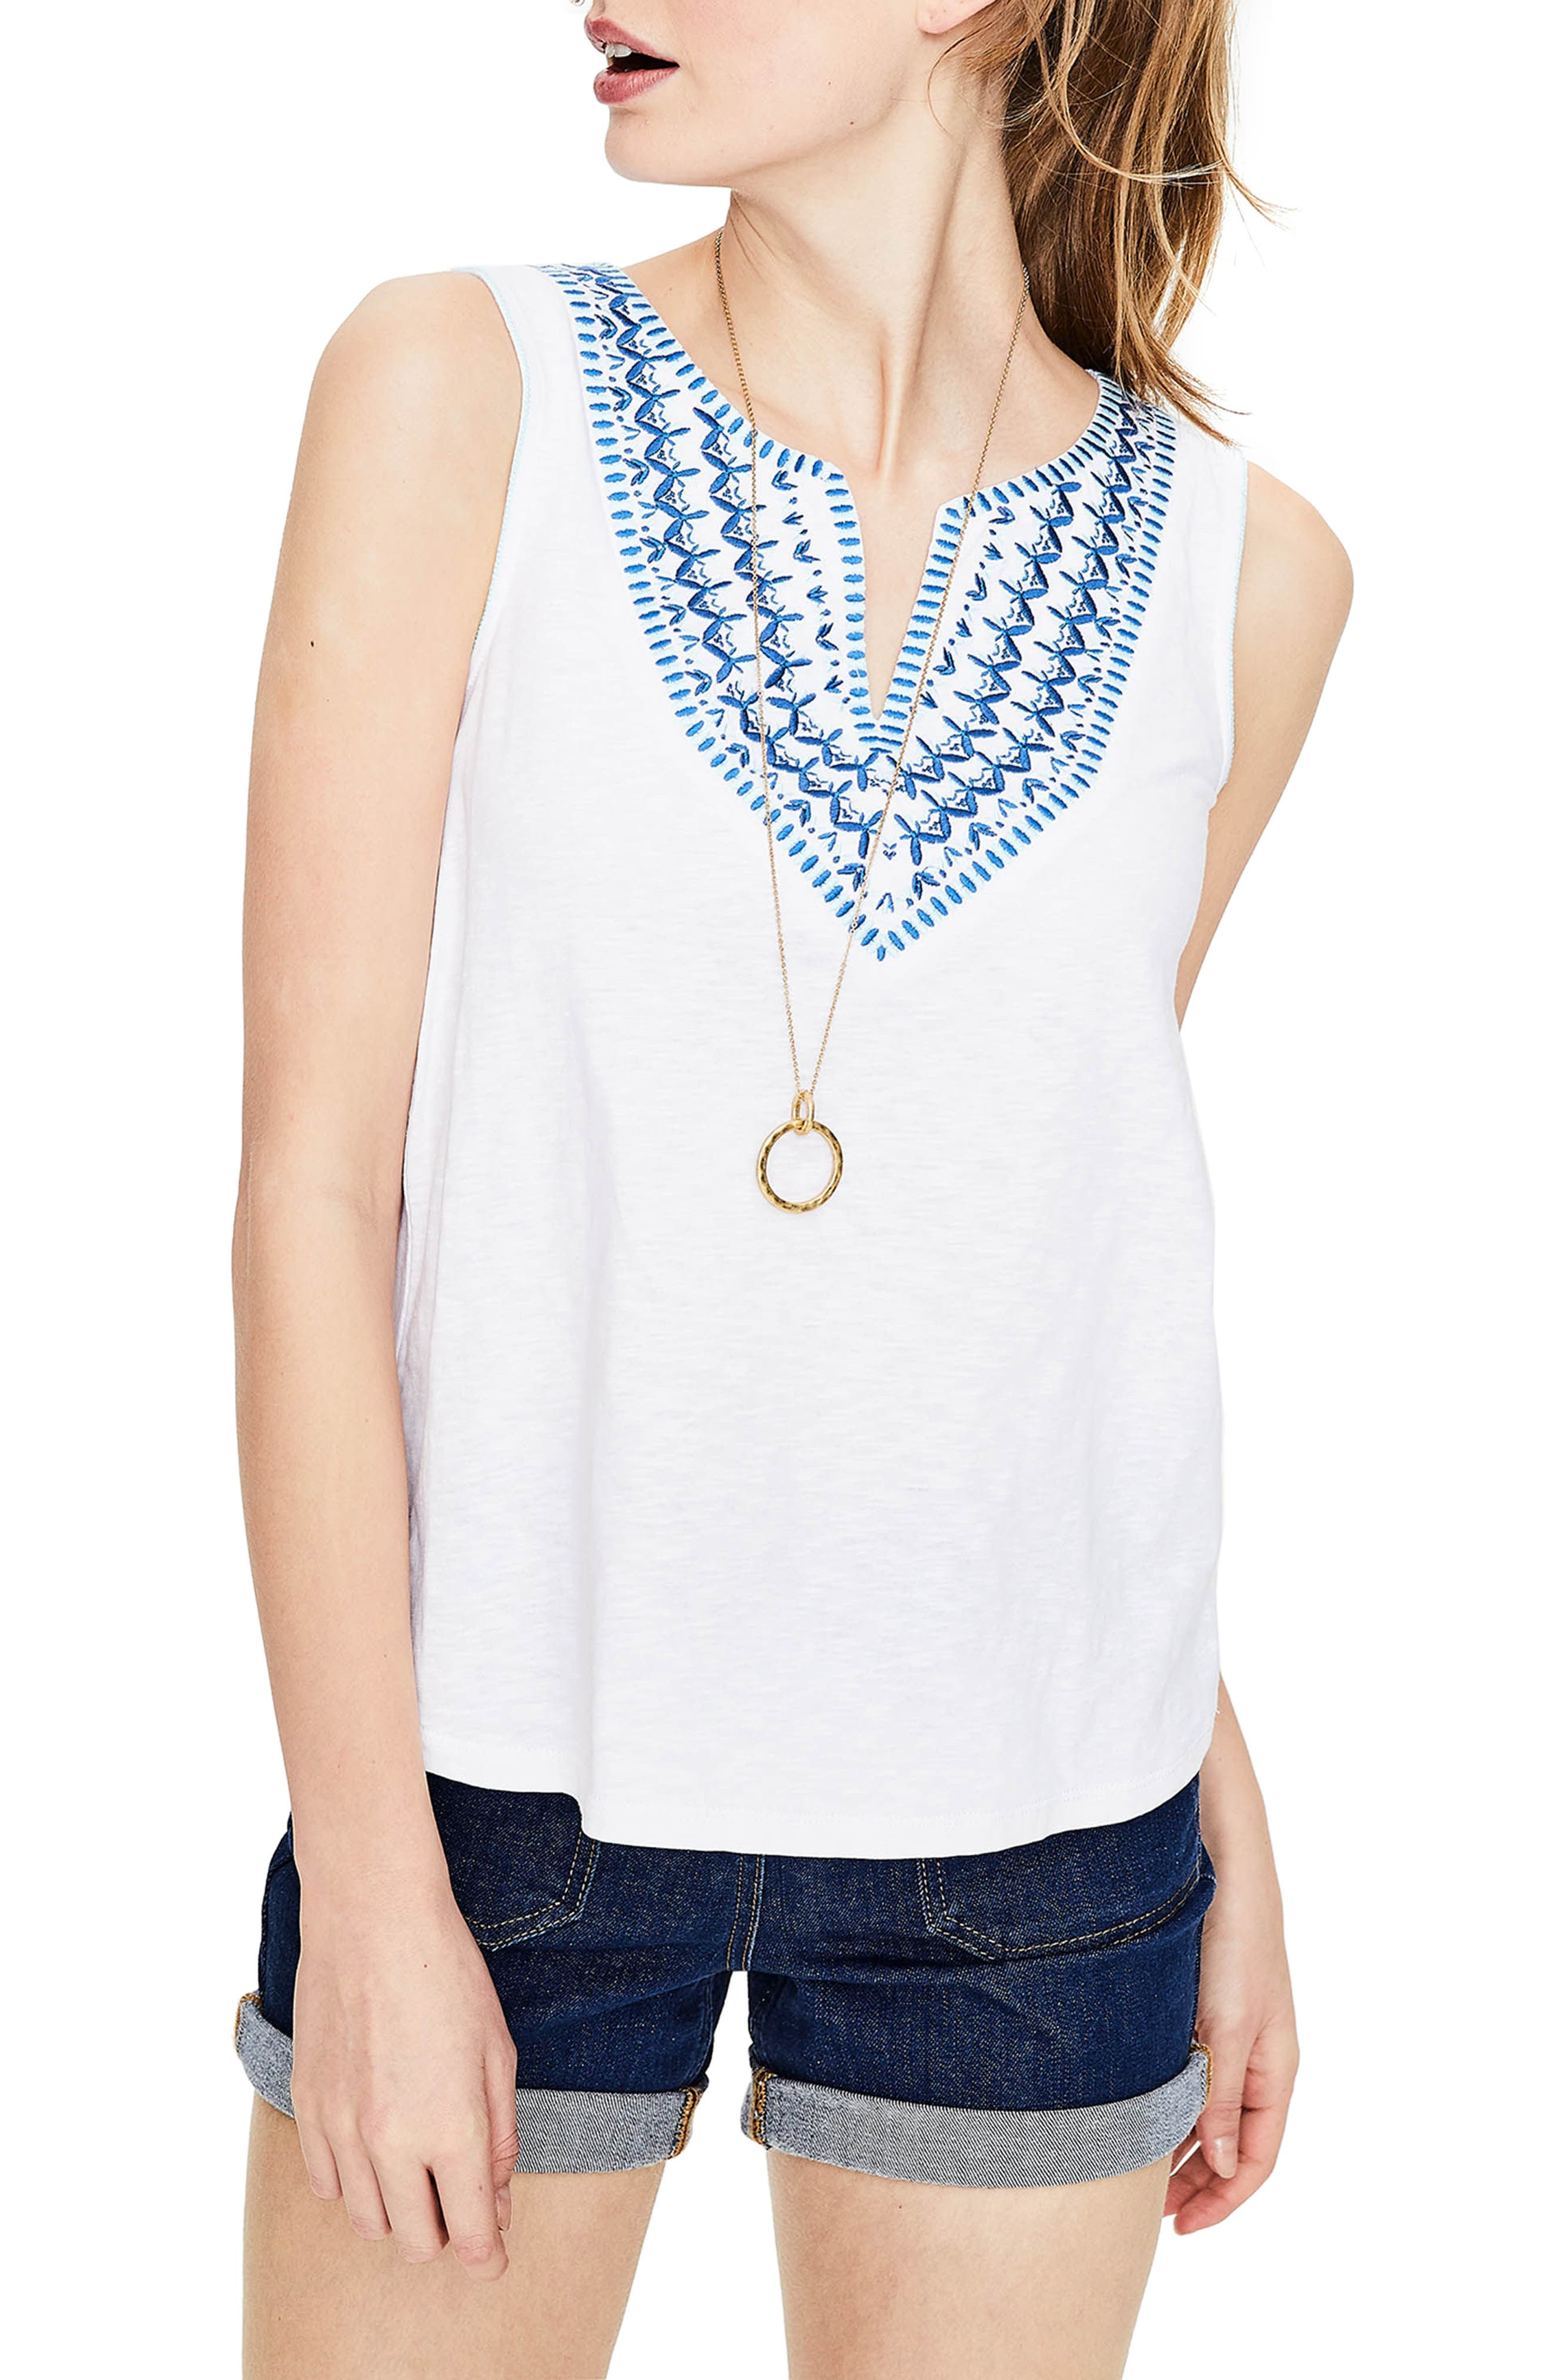 BODEN,                             Embroidered Tank,                             Main thumbnail 1, color,                             100